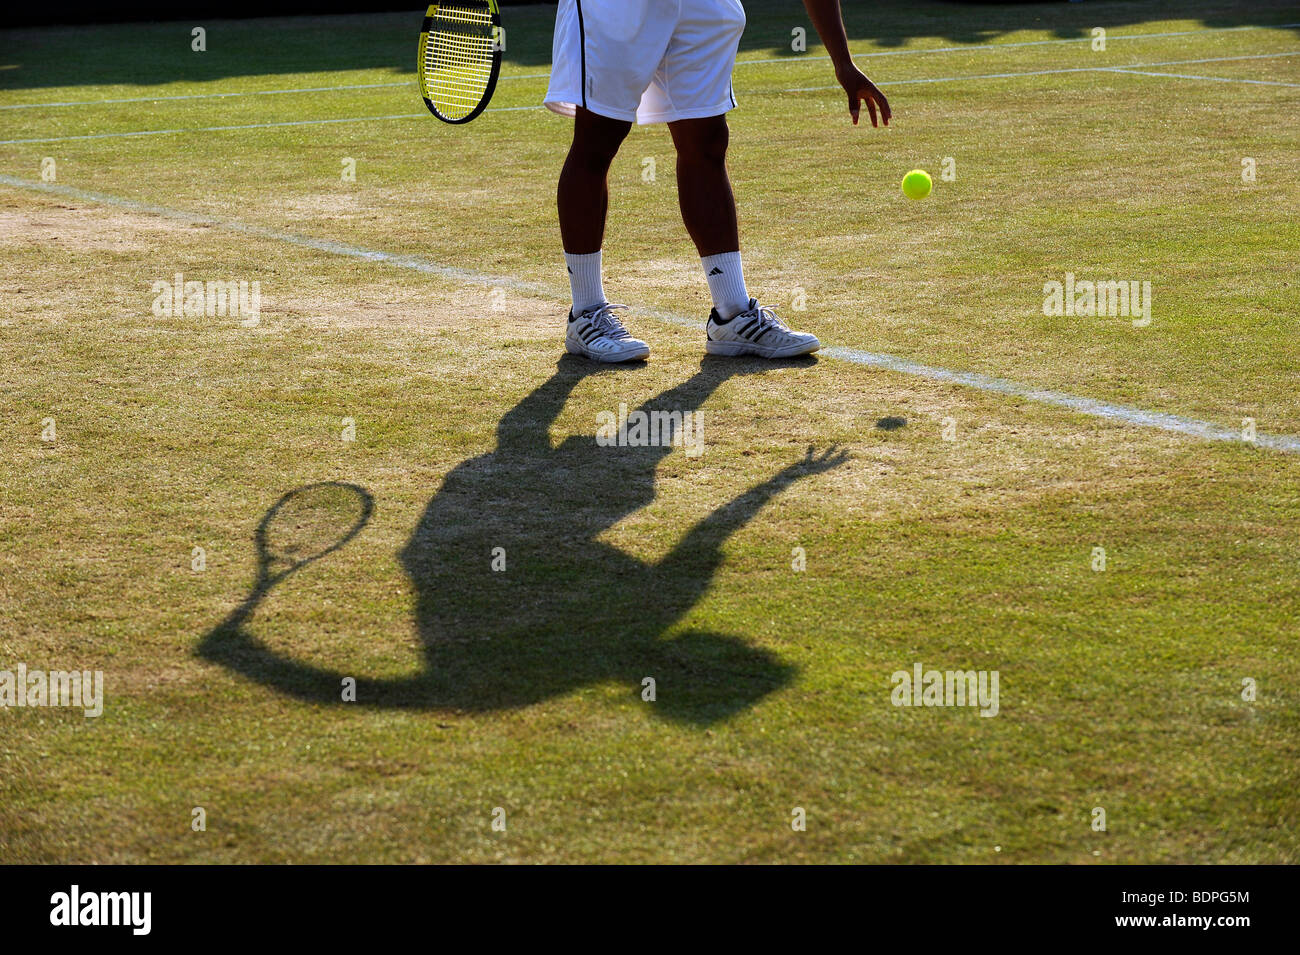 A player and shadow as he bounces the ball before serving during the 2009 Wimbledon Tennis Championships - Stock Image